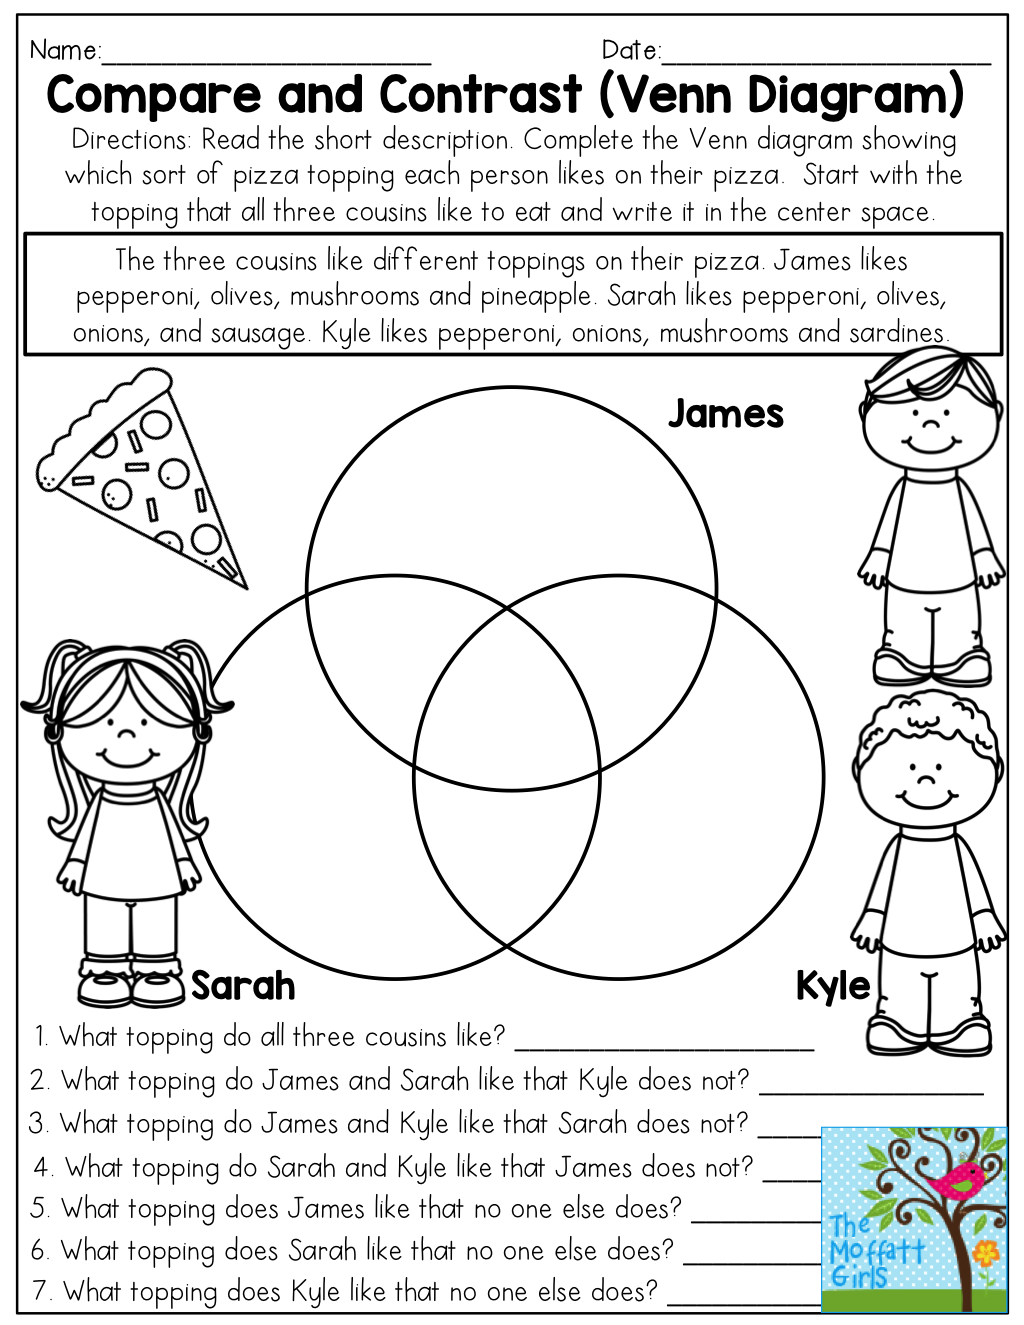 small resolution of Compare and Contrast (Venn Diagram) 3 Things- Read the short description